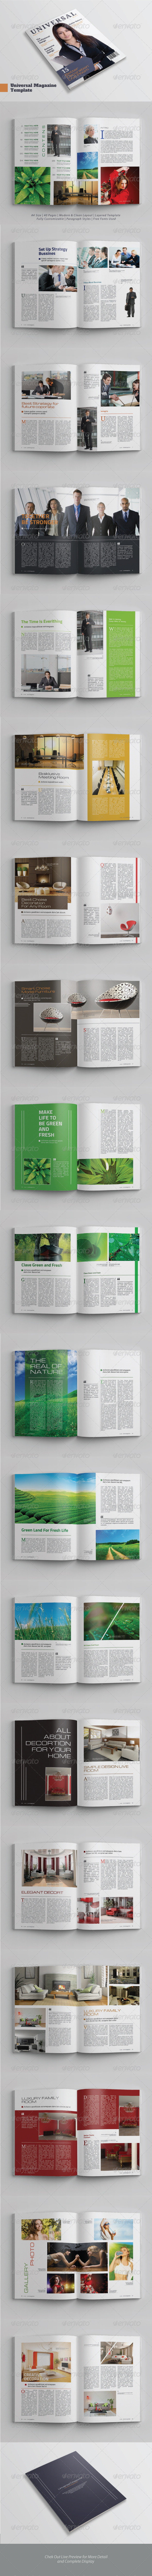 A4/Letter Universal Magazine Template - Magazines Print Templates